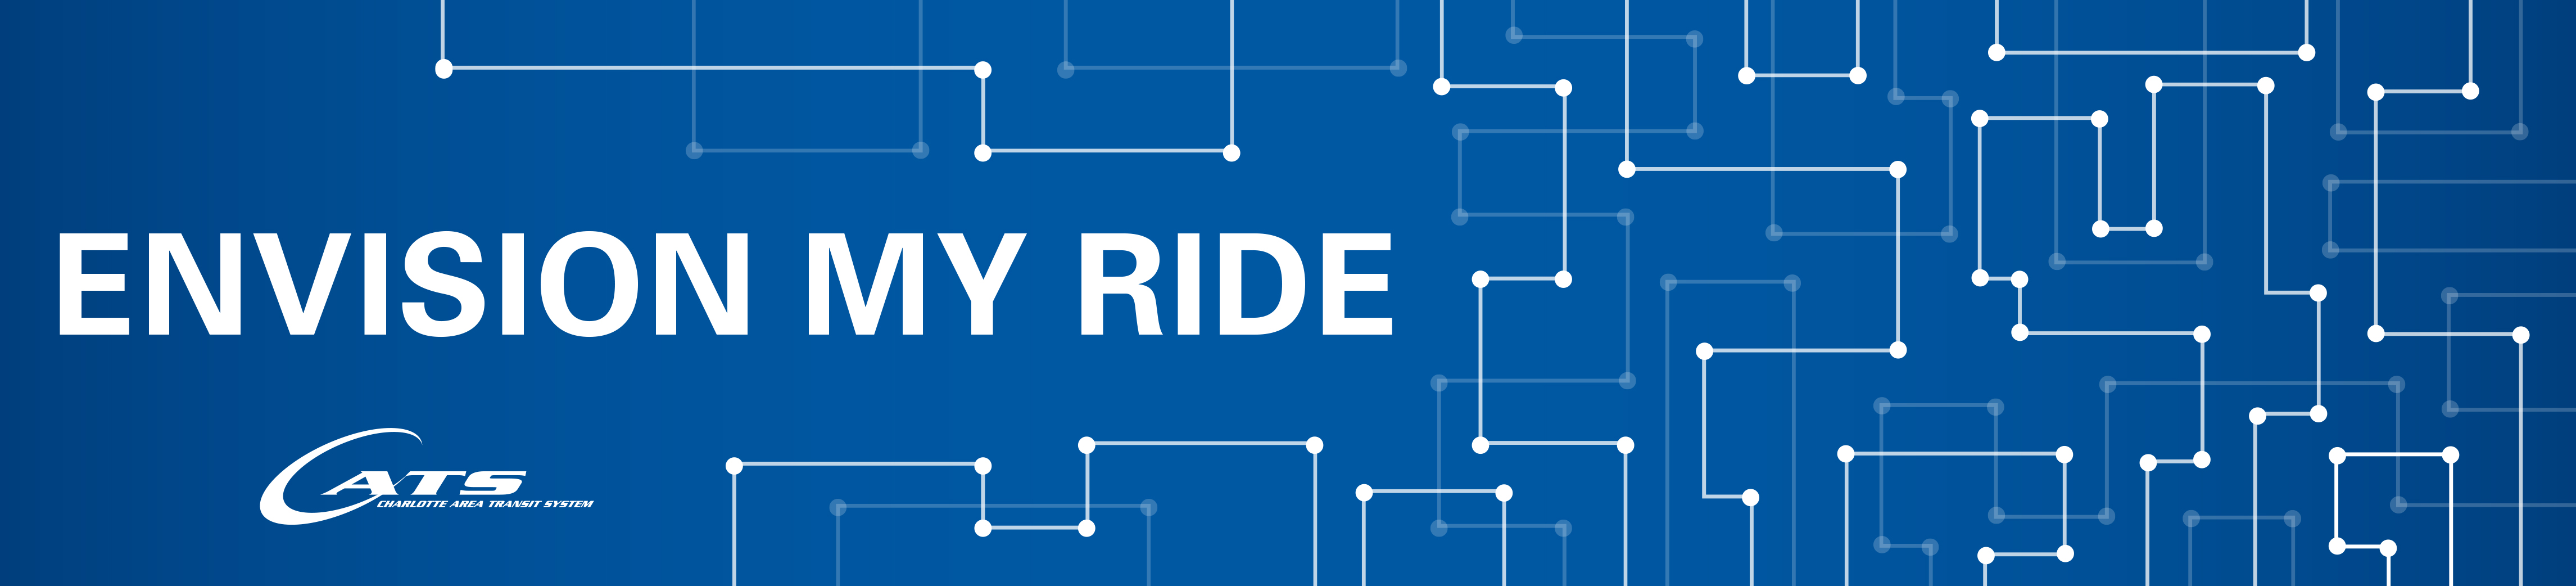 Envision My Ride Page banner